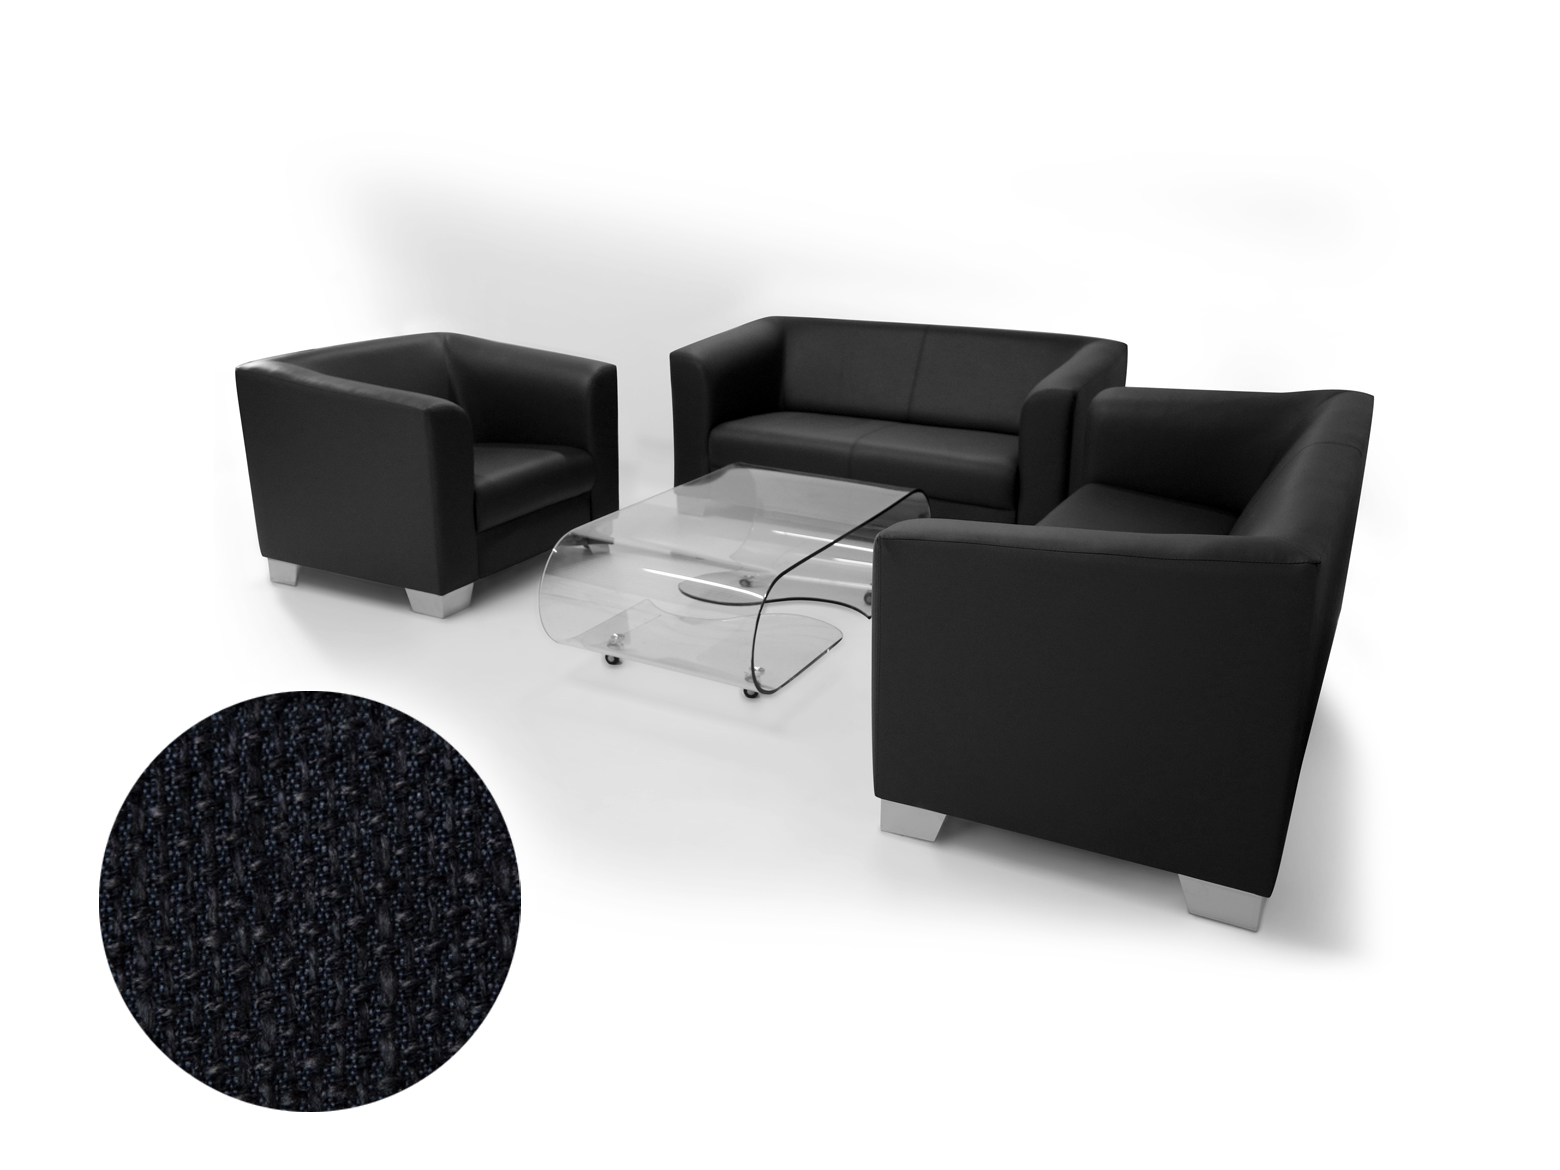 chicago 3 2 1 sofagarnitur webstoff berlin schwarz. Black Bedroom Furniture Sets. Home Design Ideas